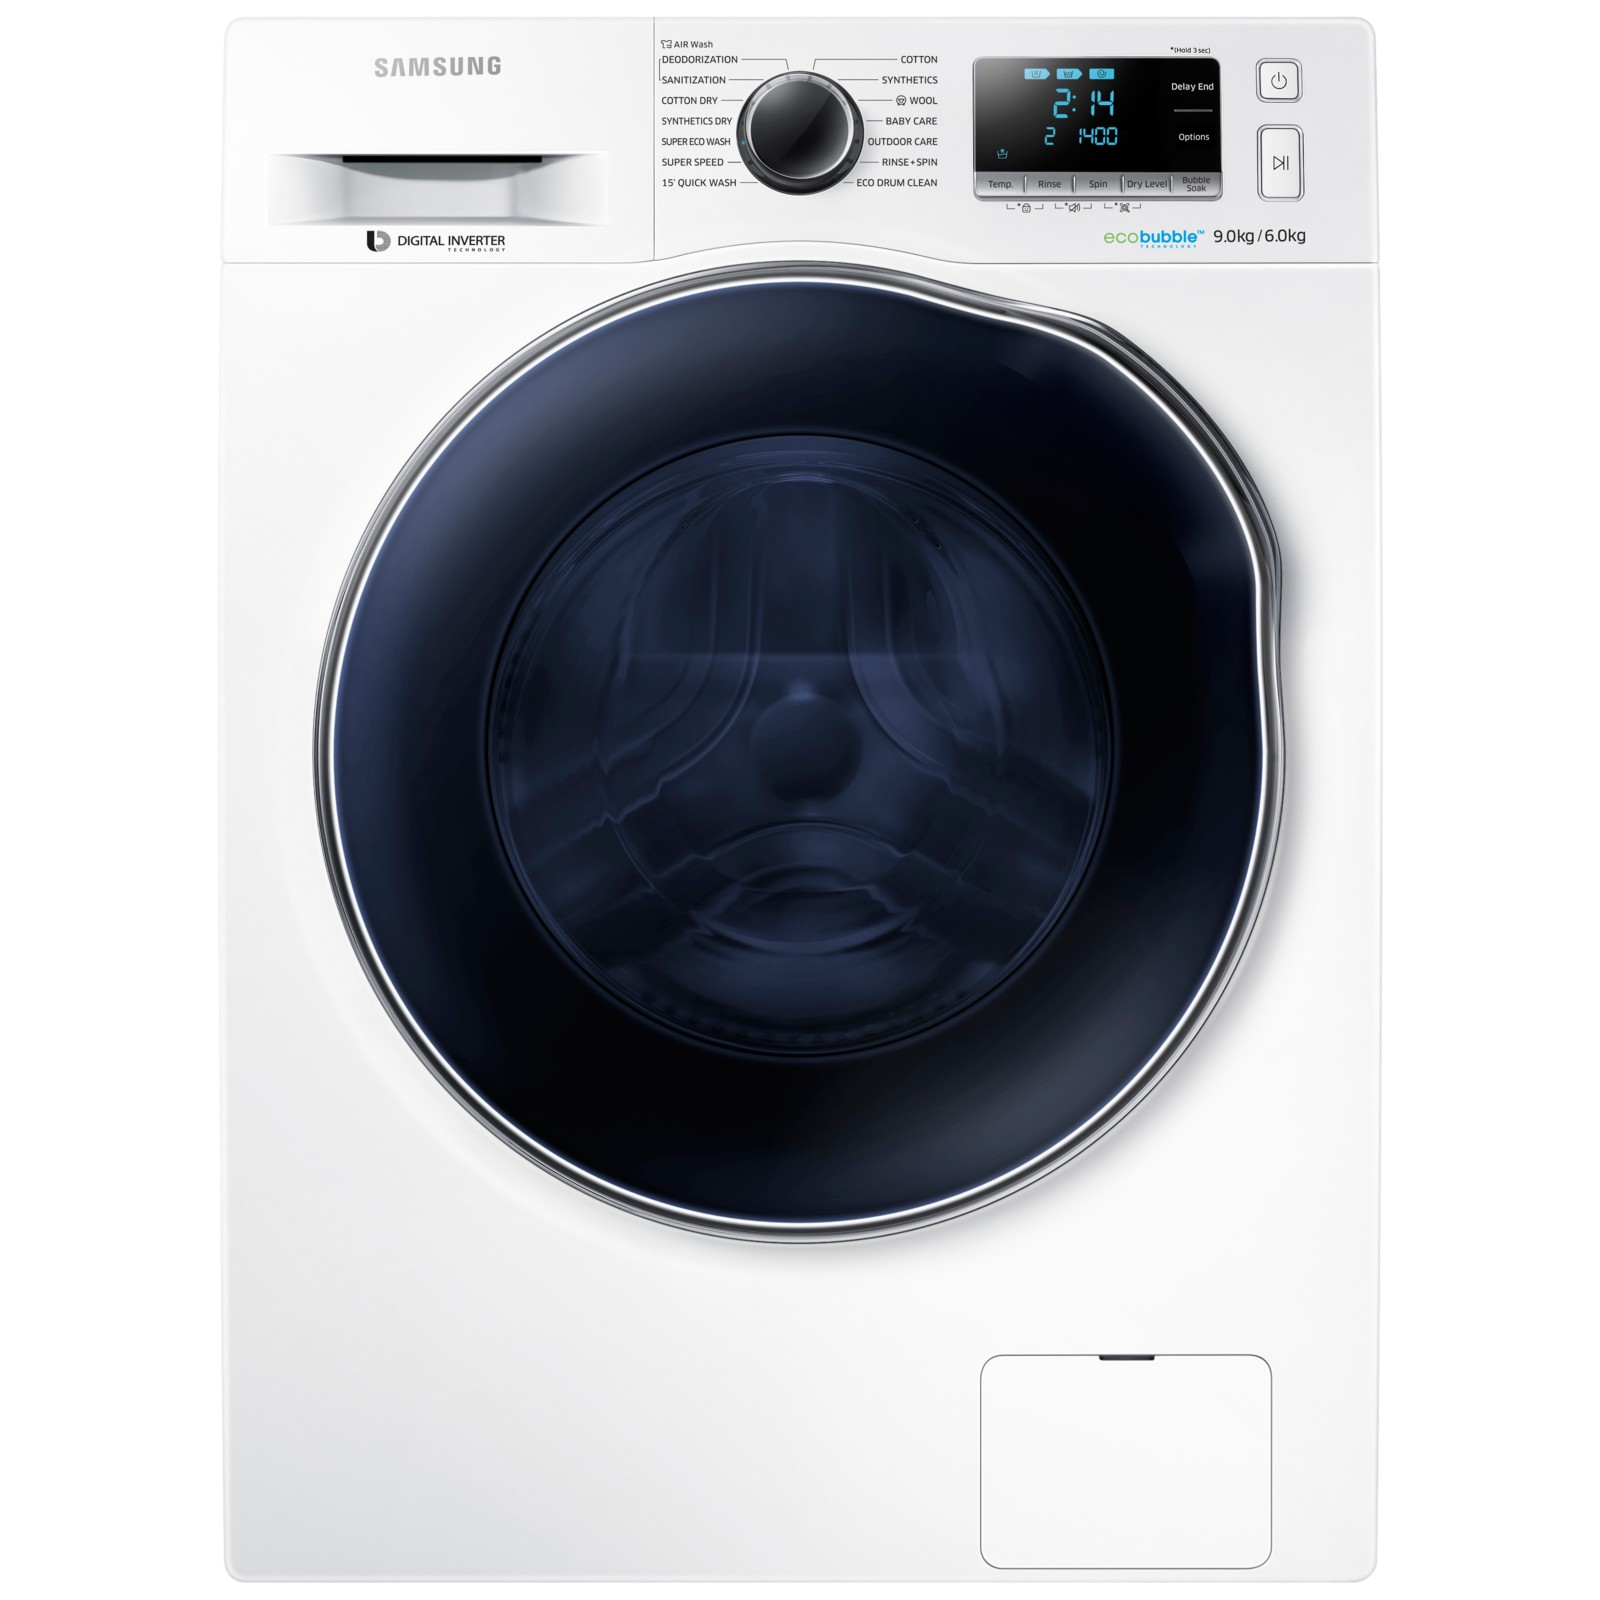 Samsung WD90J6410AW Freestanding Washer Dryer